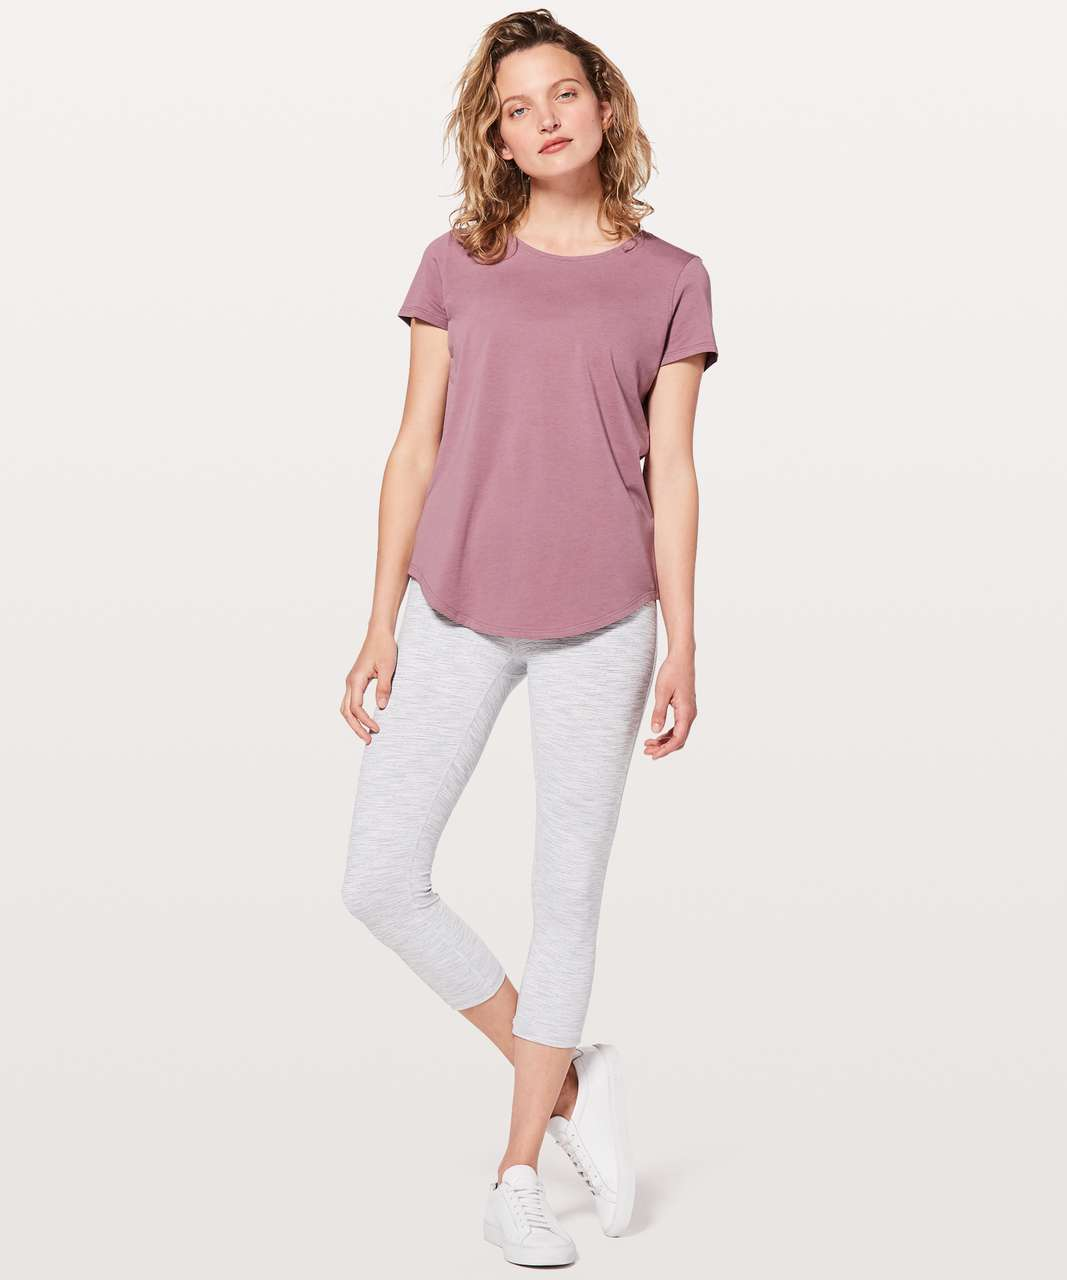 Lululemon Love Crew III - Figue